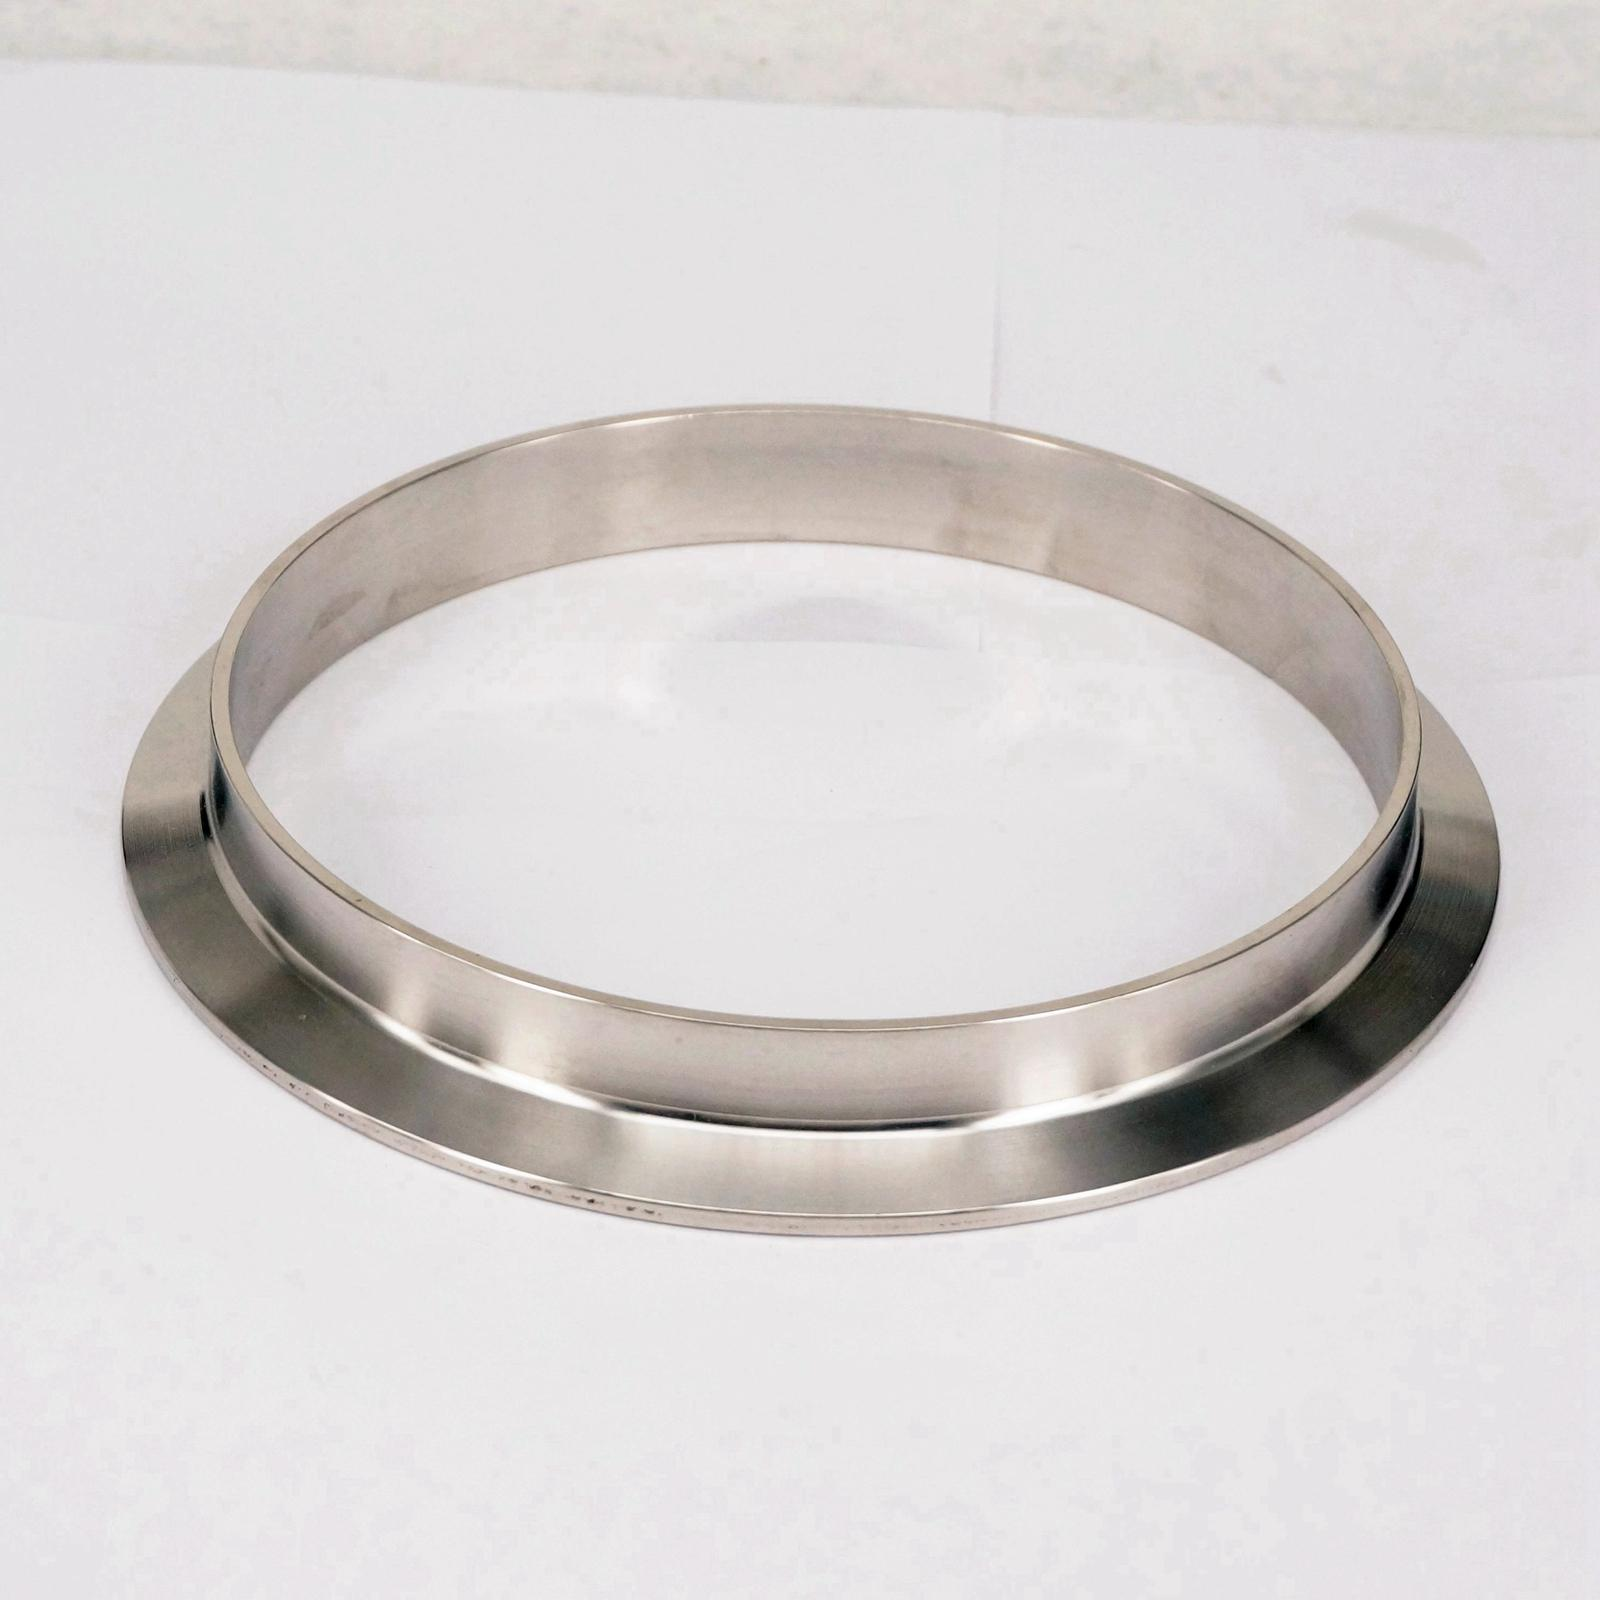 159mm Tube O/D X 183mm Ferrule O/D 304 Stainless Steel Sanitary Weld Ferrule Connector Pipe Fitting